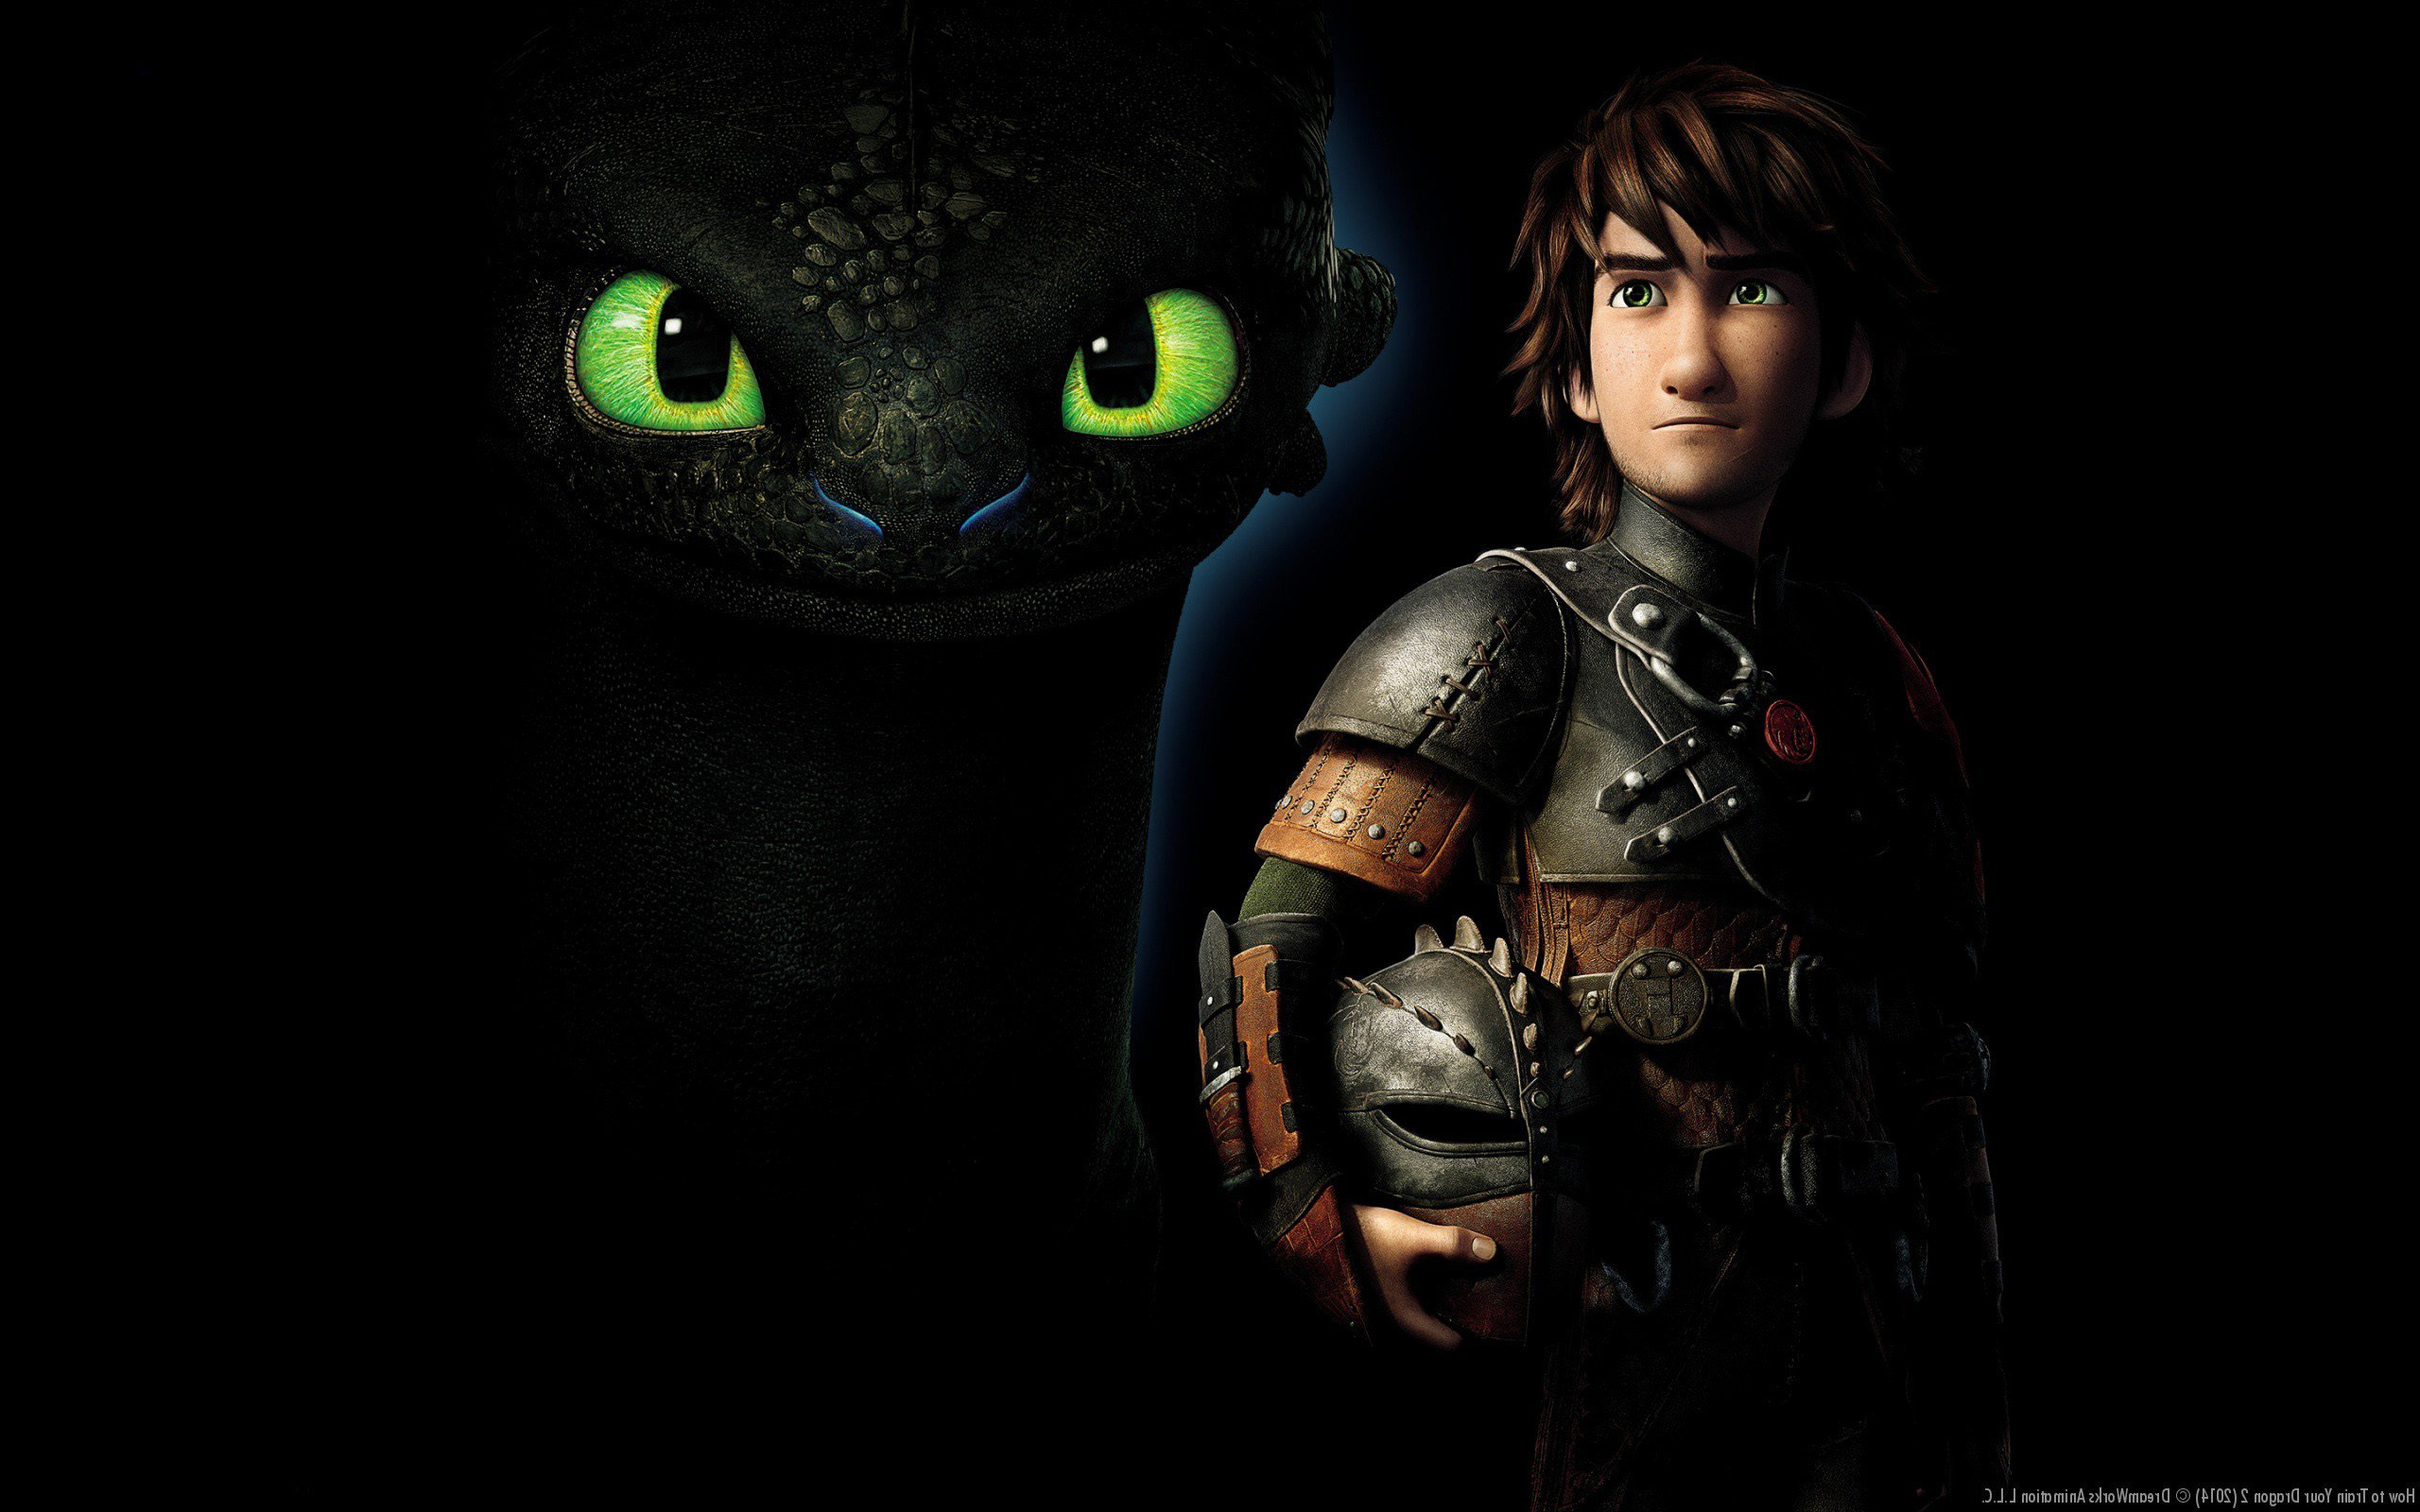 How To Train Your Dragon Hd Hd Movies 4k Wallpapers Images Backgrounds Photos And Pictures